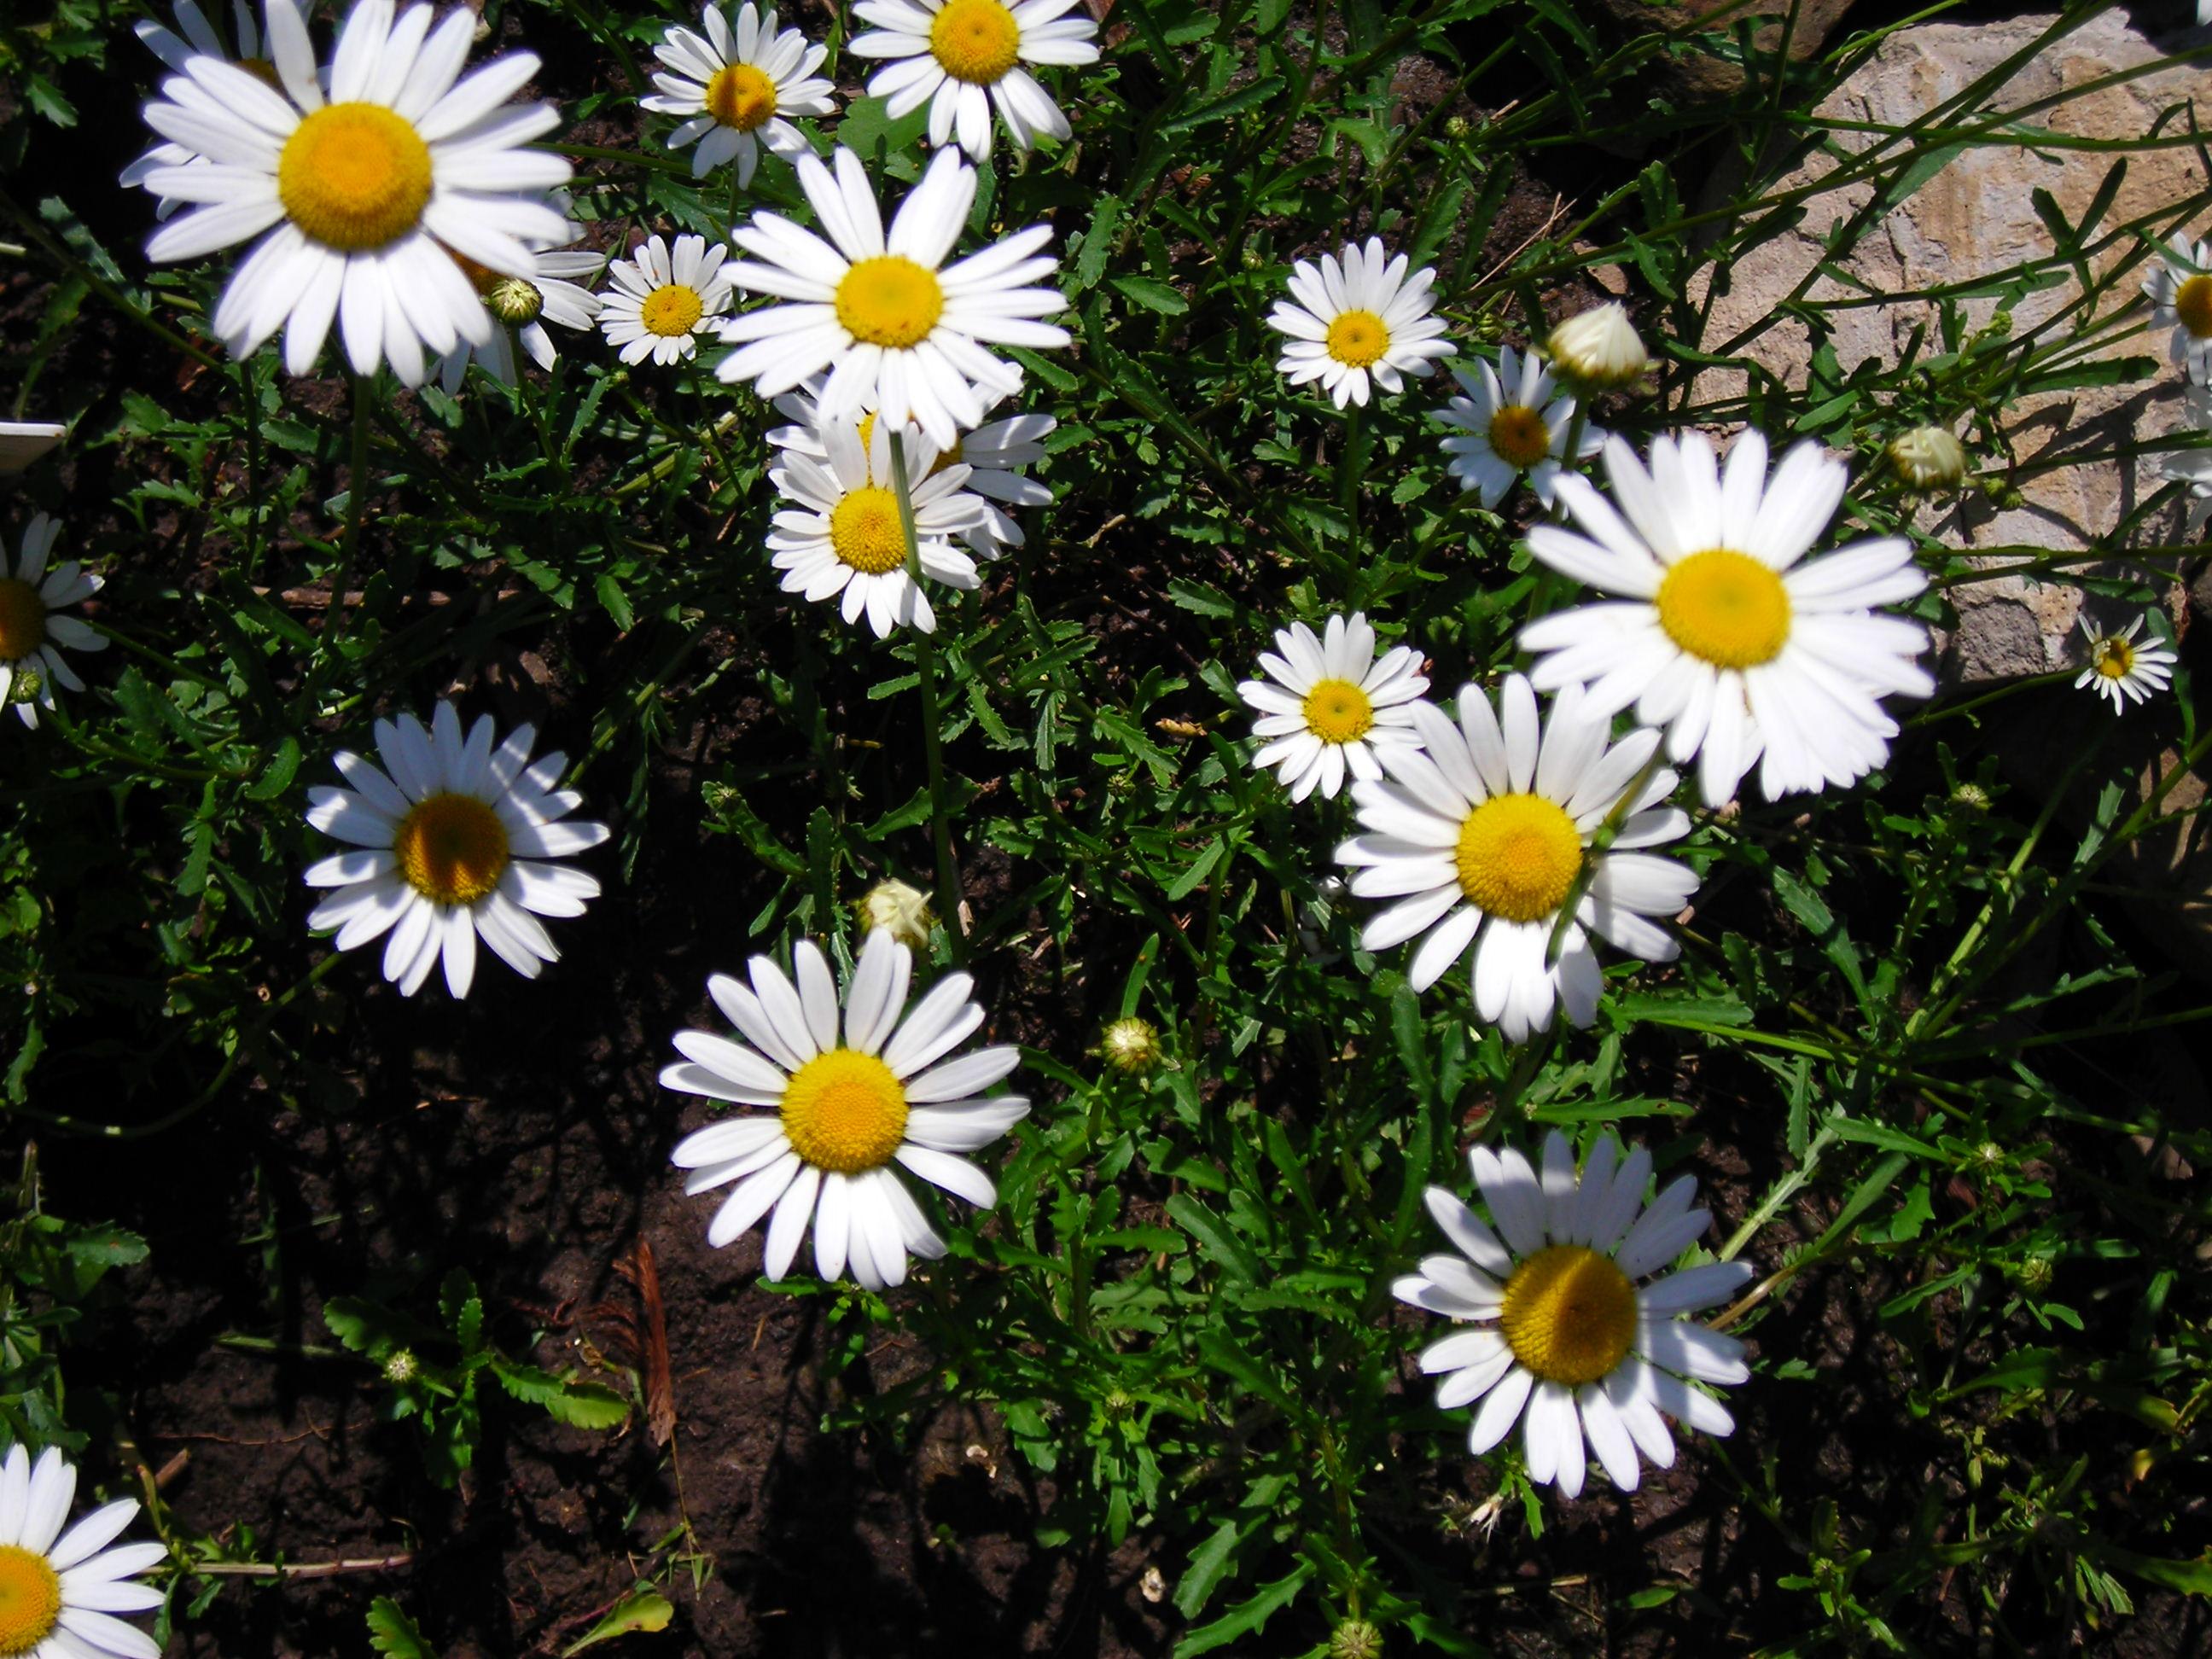 Wild daisies are sweet garden flower for western new york Where did daisies originate